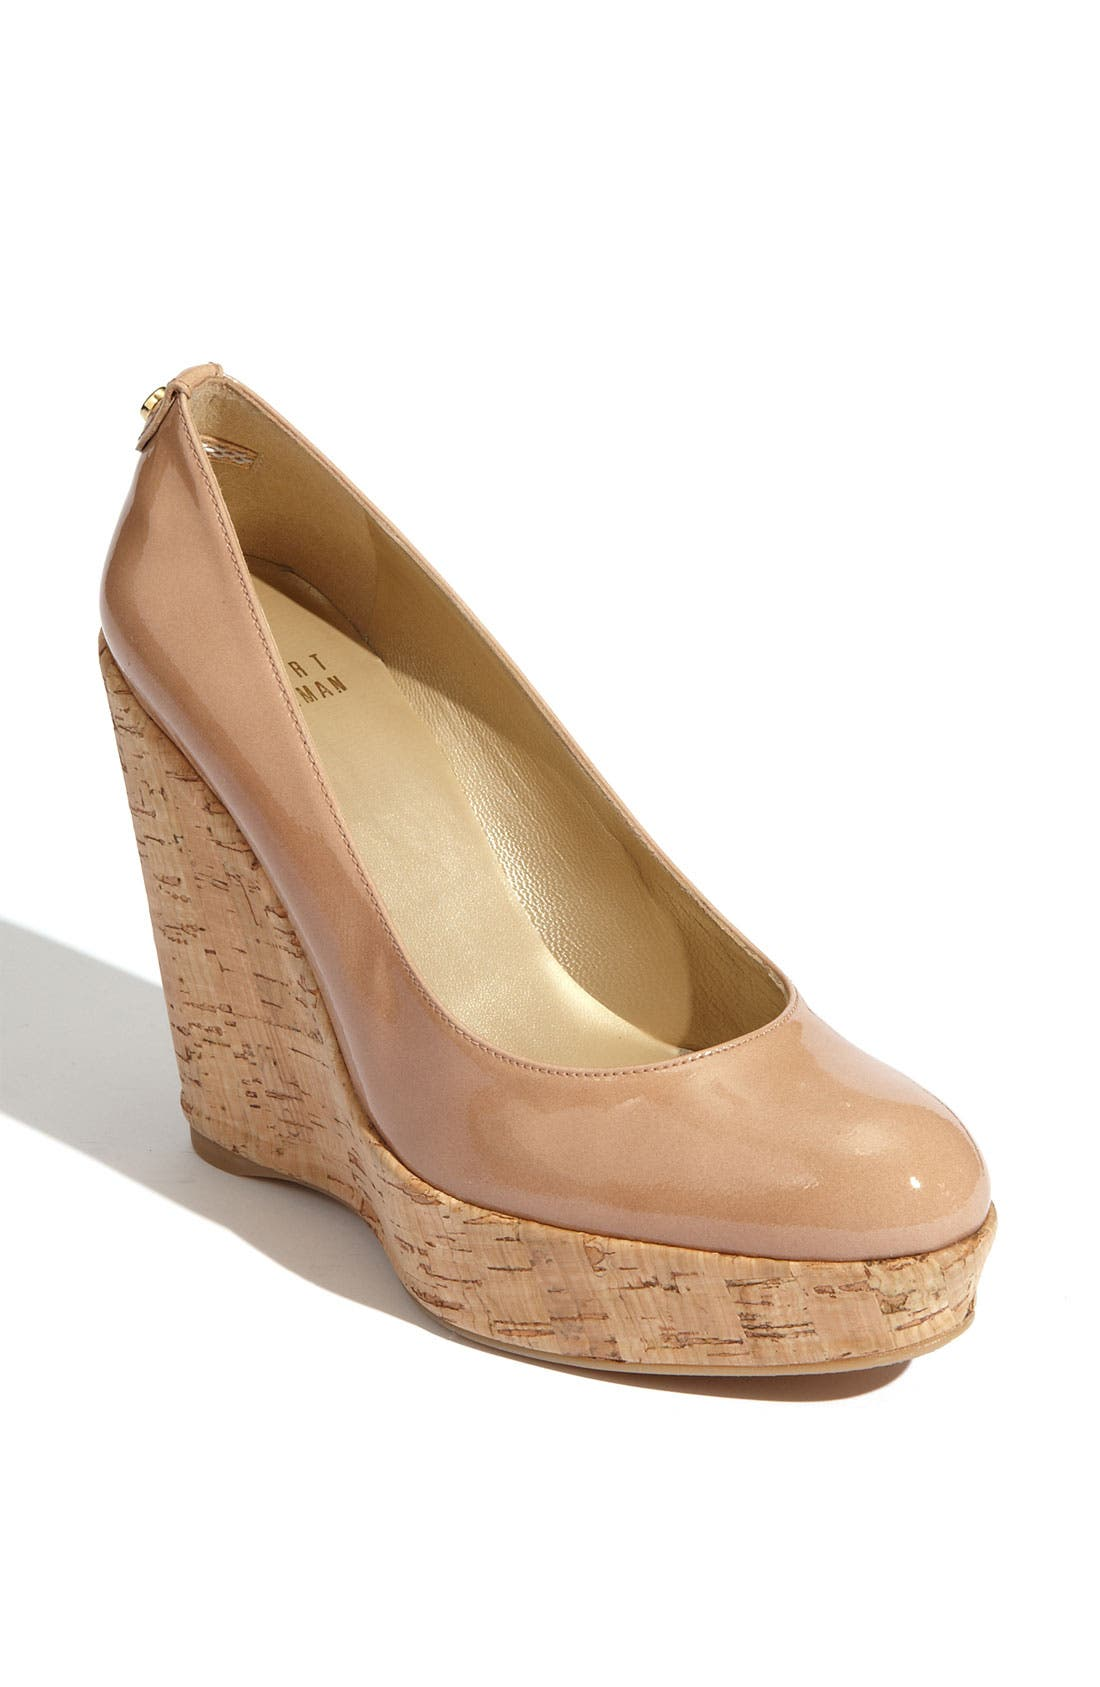 Alternate Image 1 Selected - Stuart Weitzman 'Corkswoon' Wedge